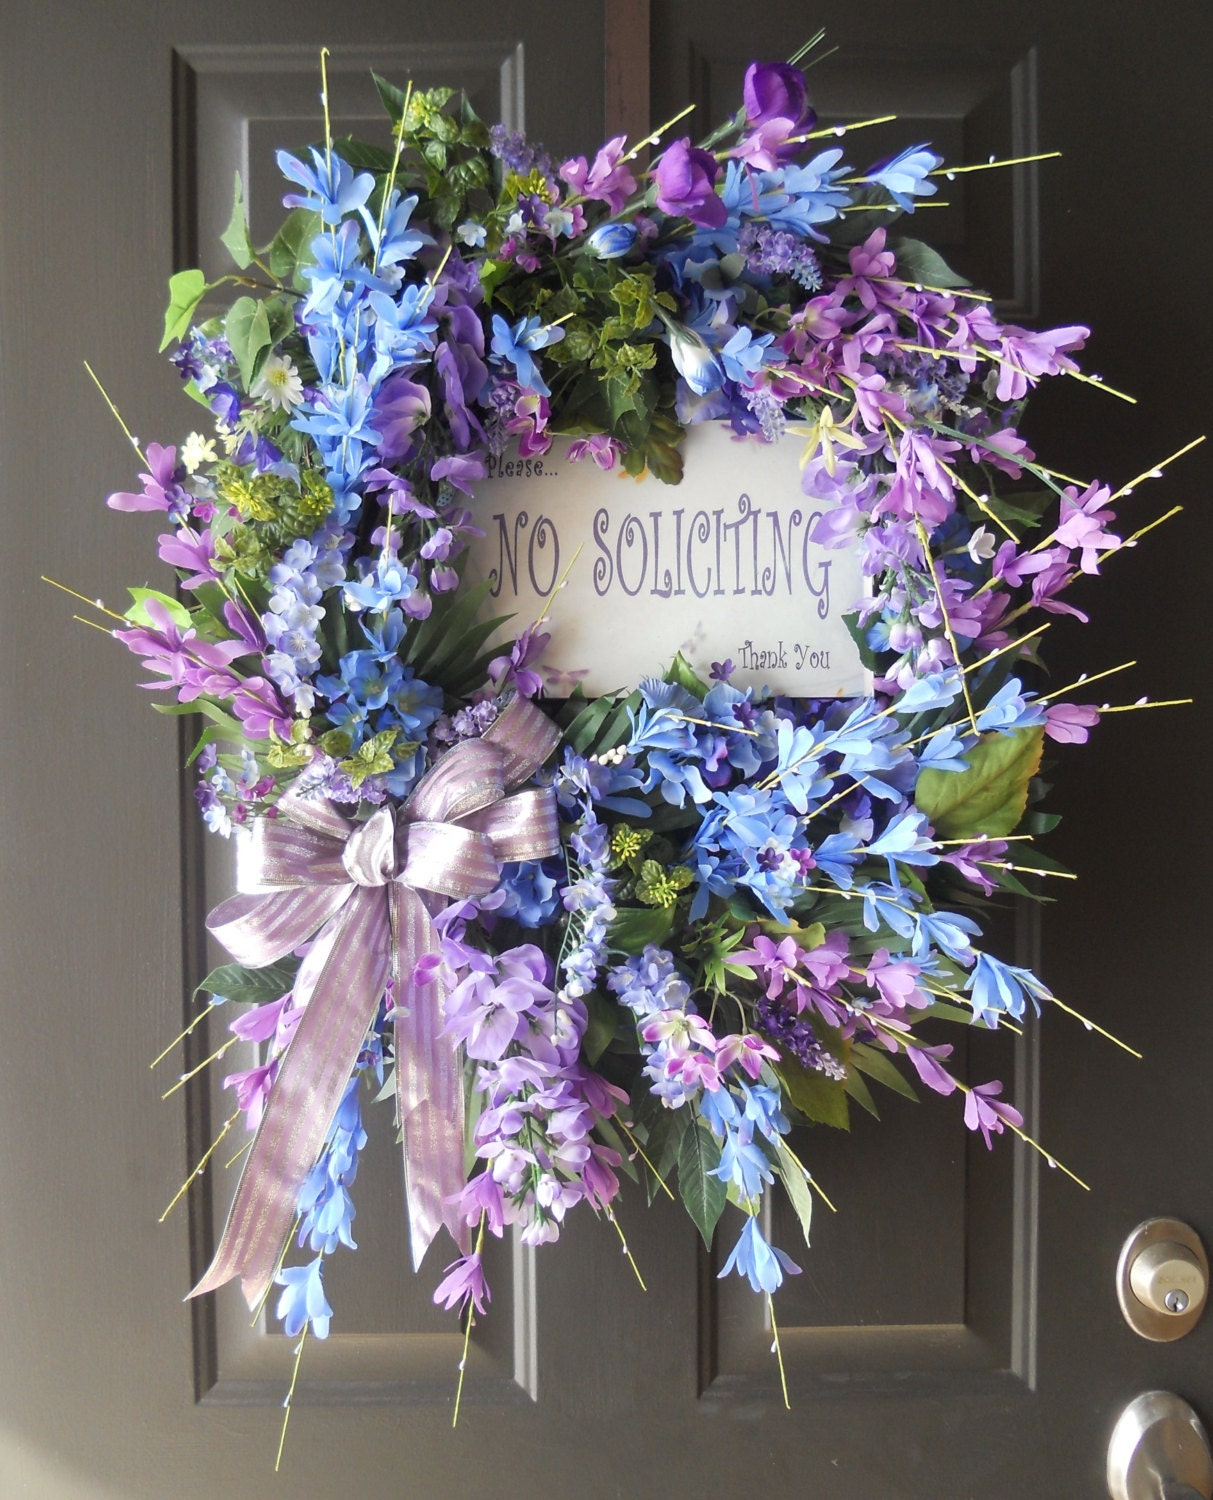 Spring Wreath, Summer Wreath, Personalized Sign, Floral Wreath Home or Office Decor - PebbleCreekDesigns